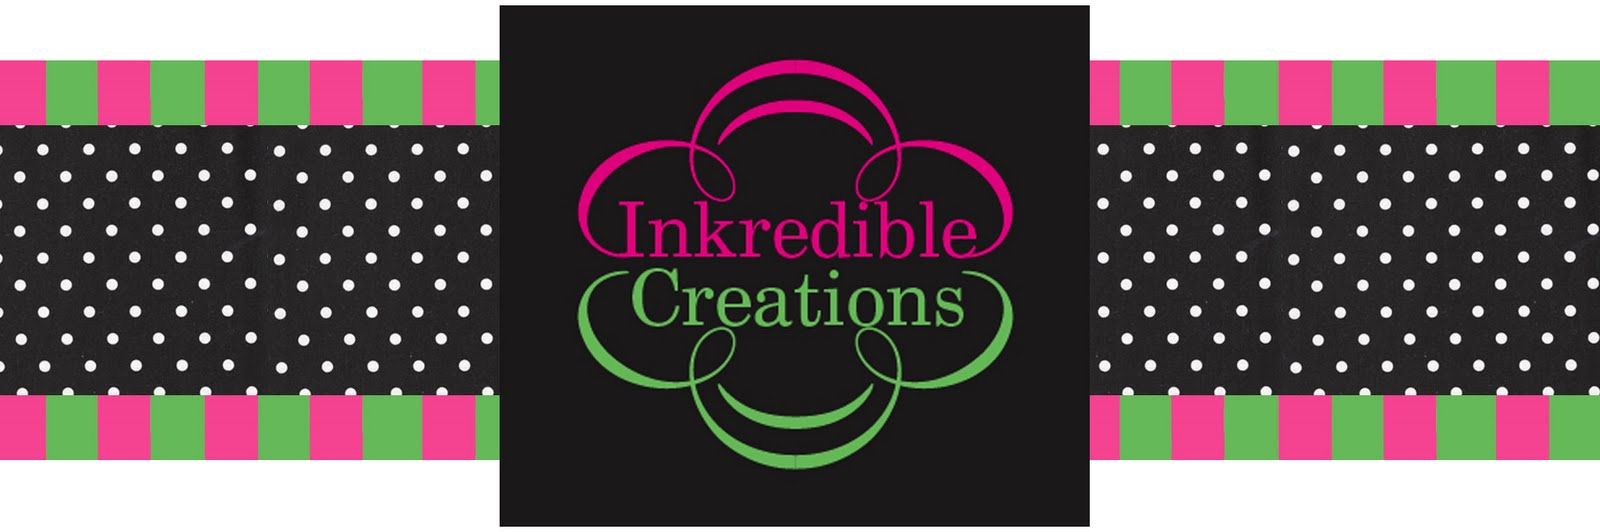 Inkredible Creations